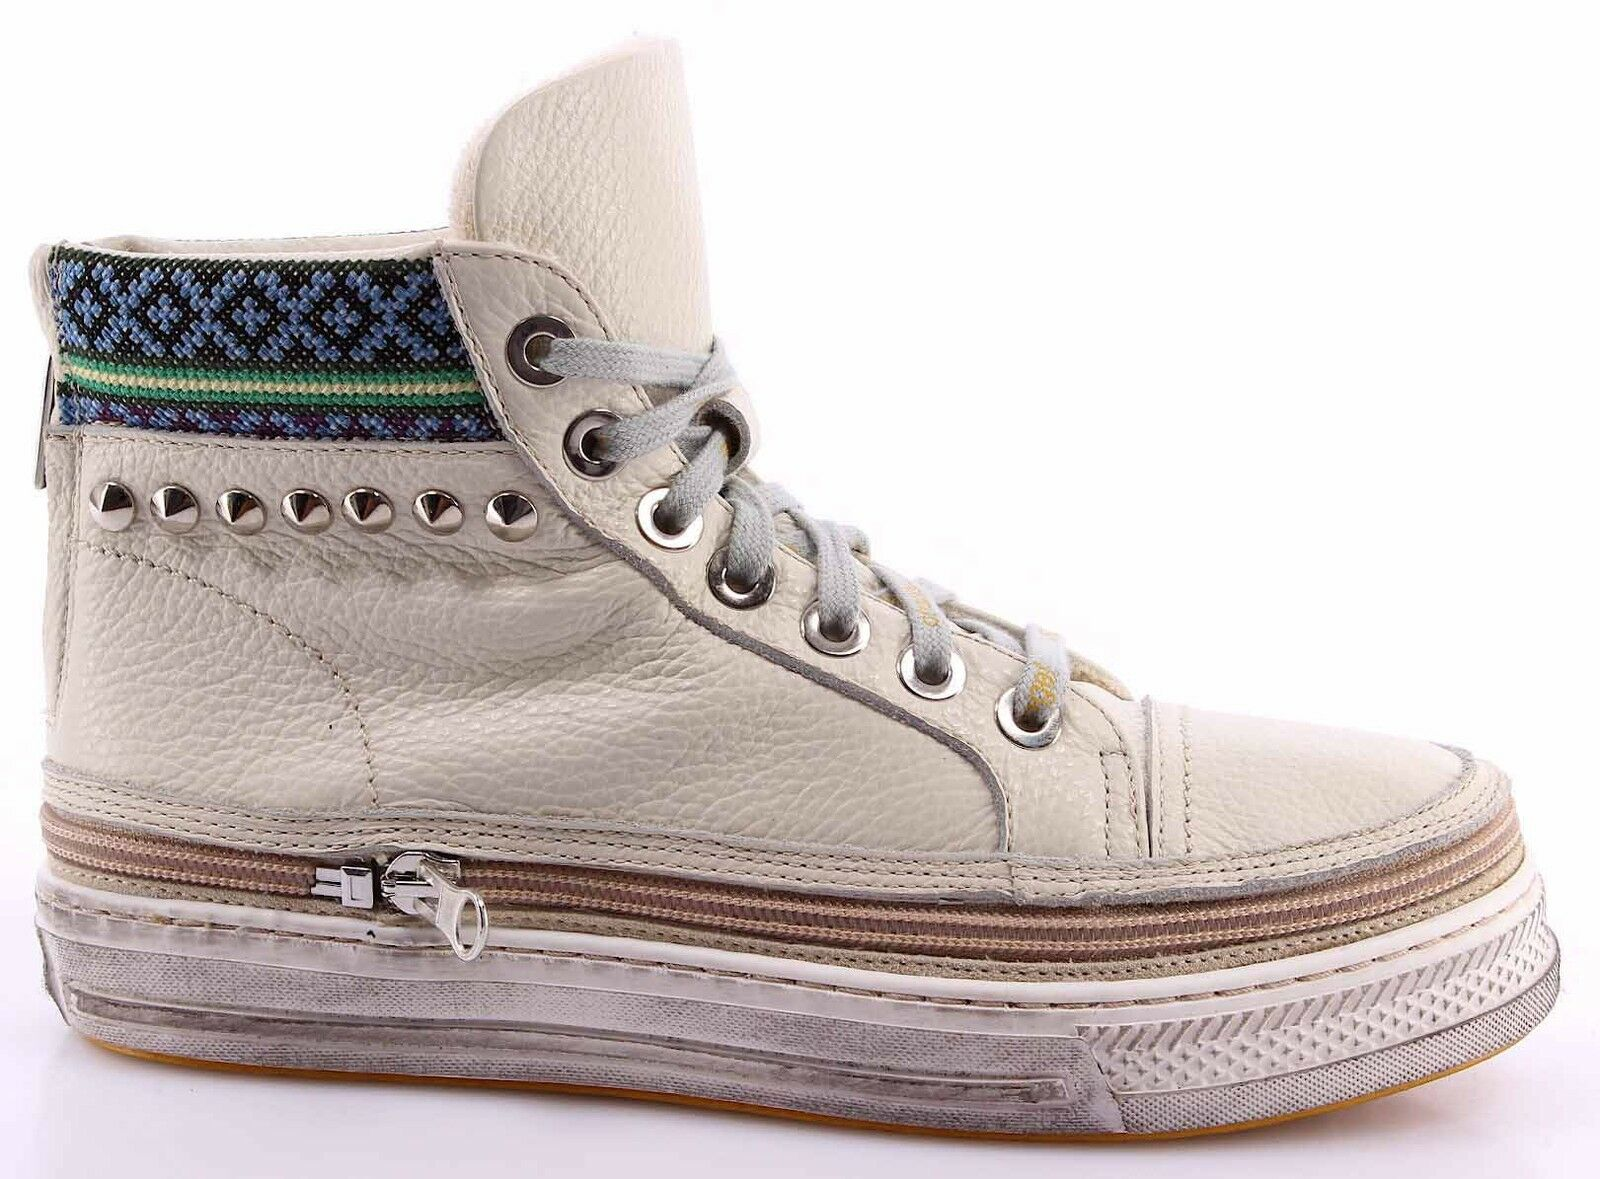 Women's High Top Sneakers CHANGE  KundaD Natural Leather Light Beige Made IT